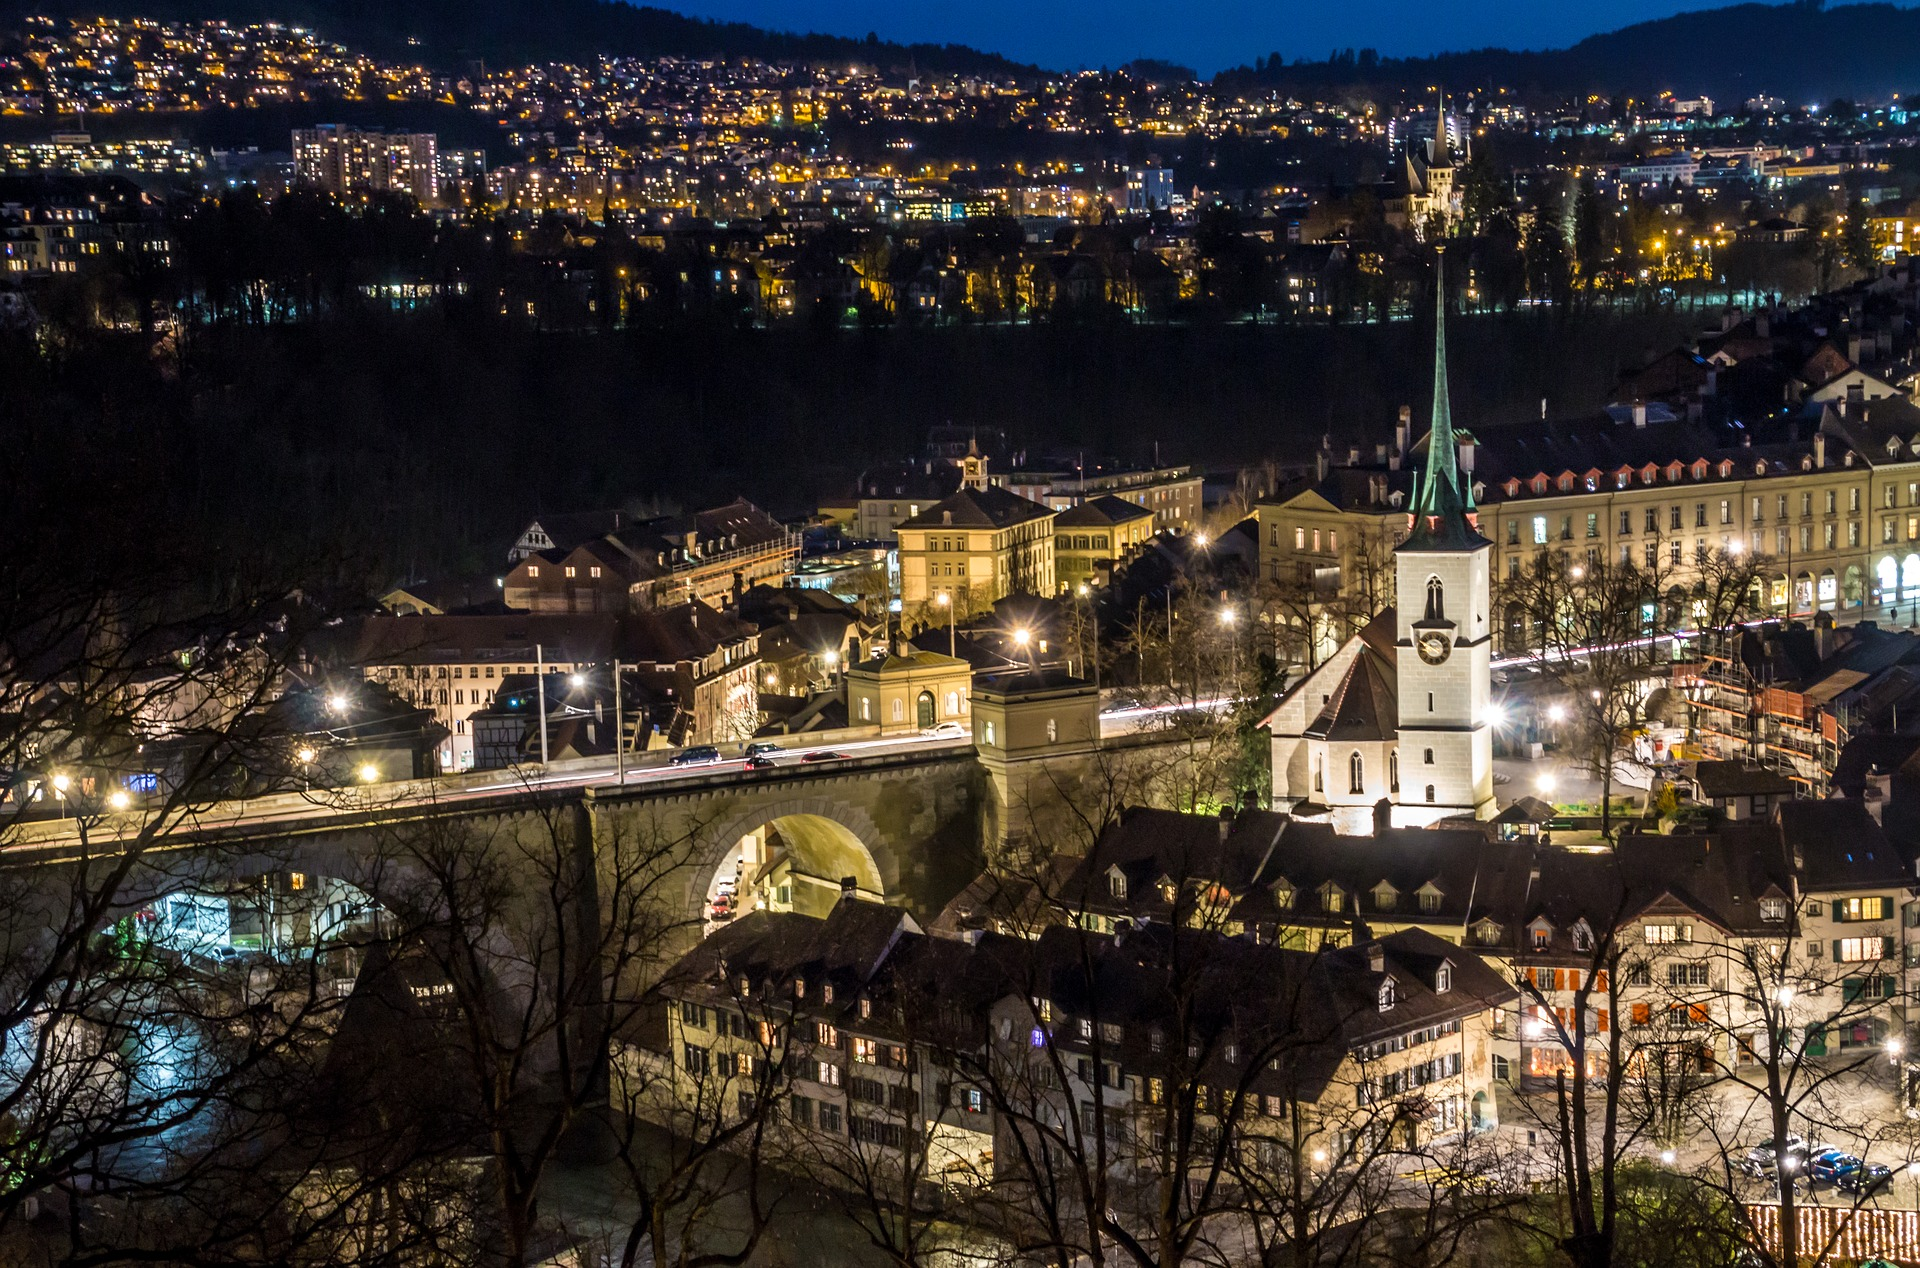 Bern, Switzerland at night